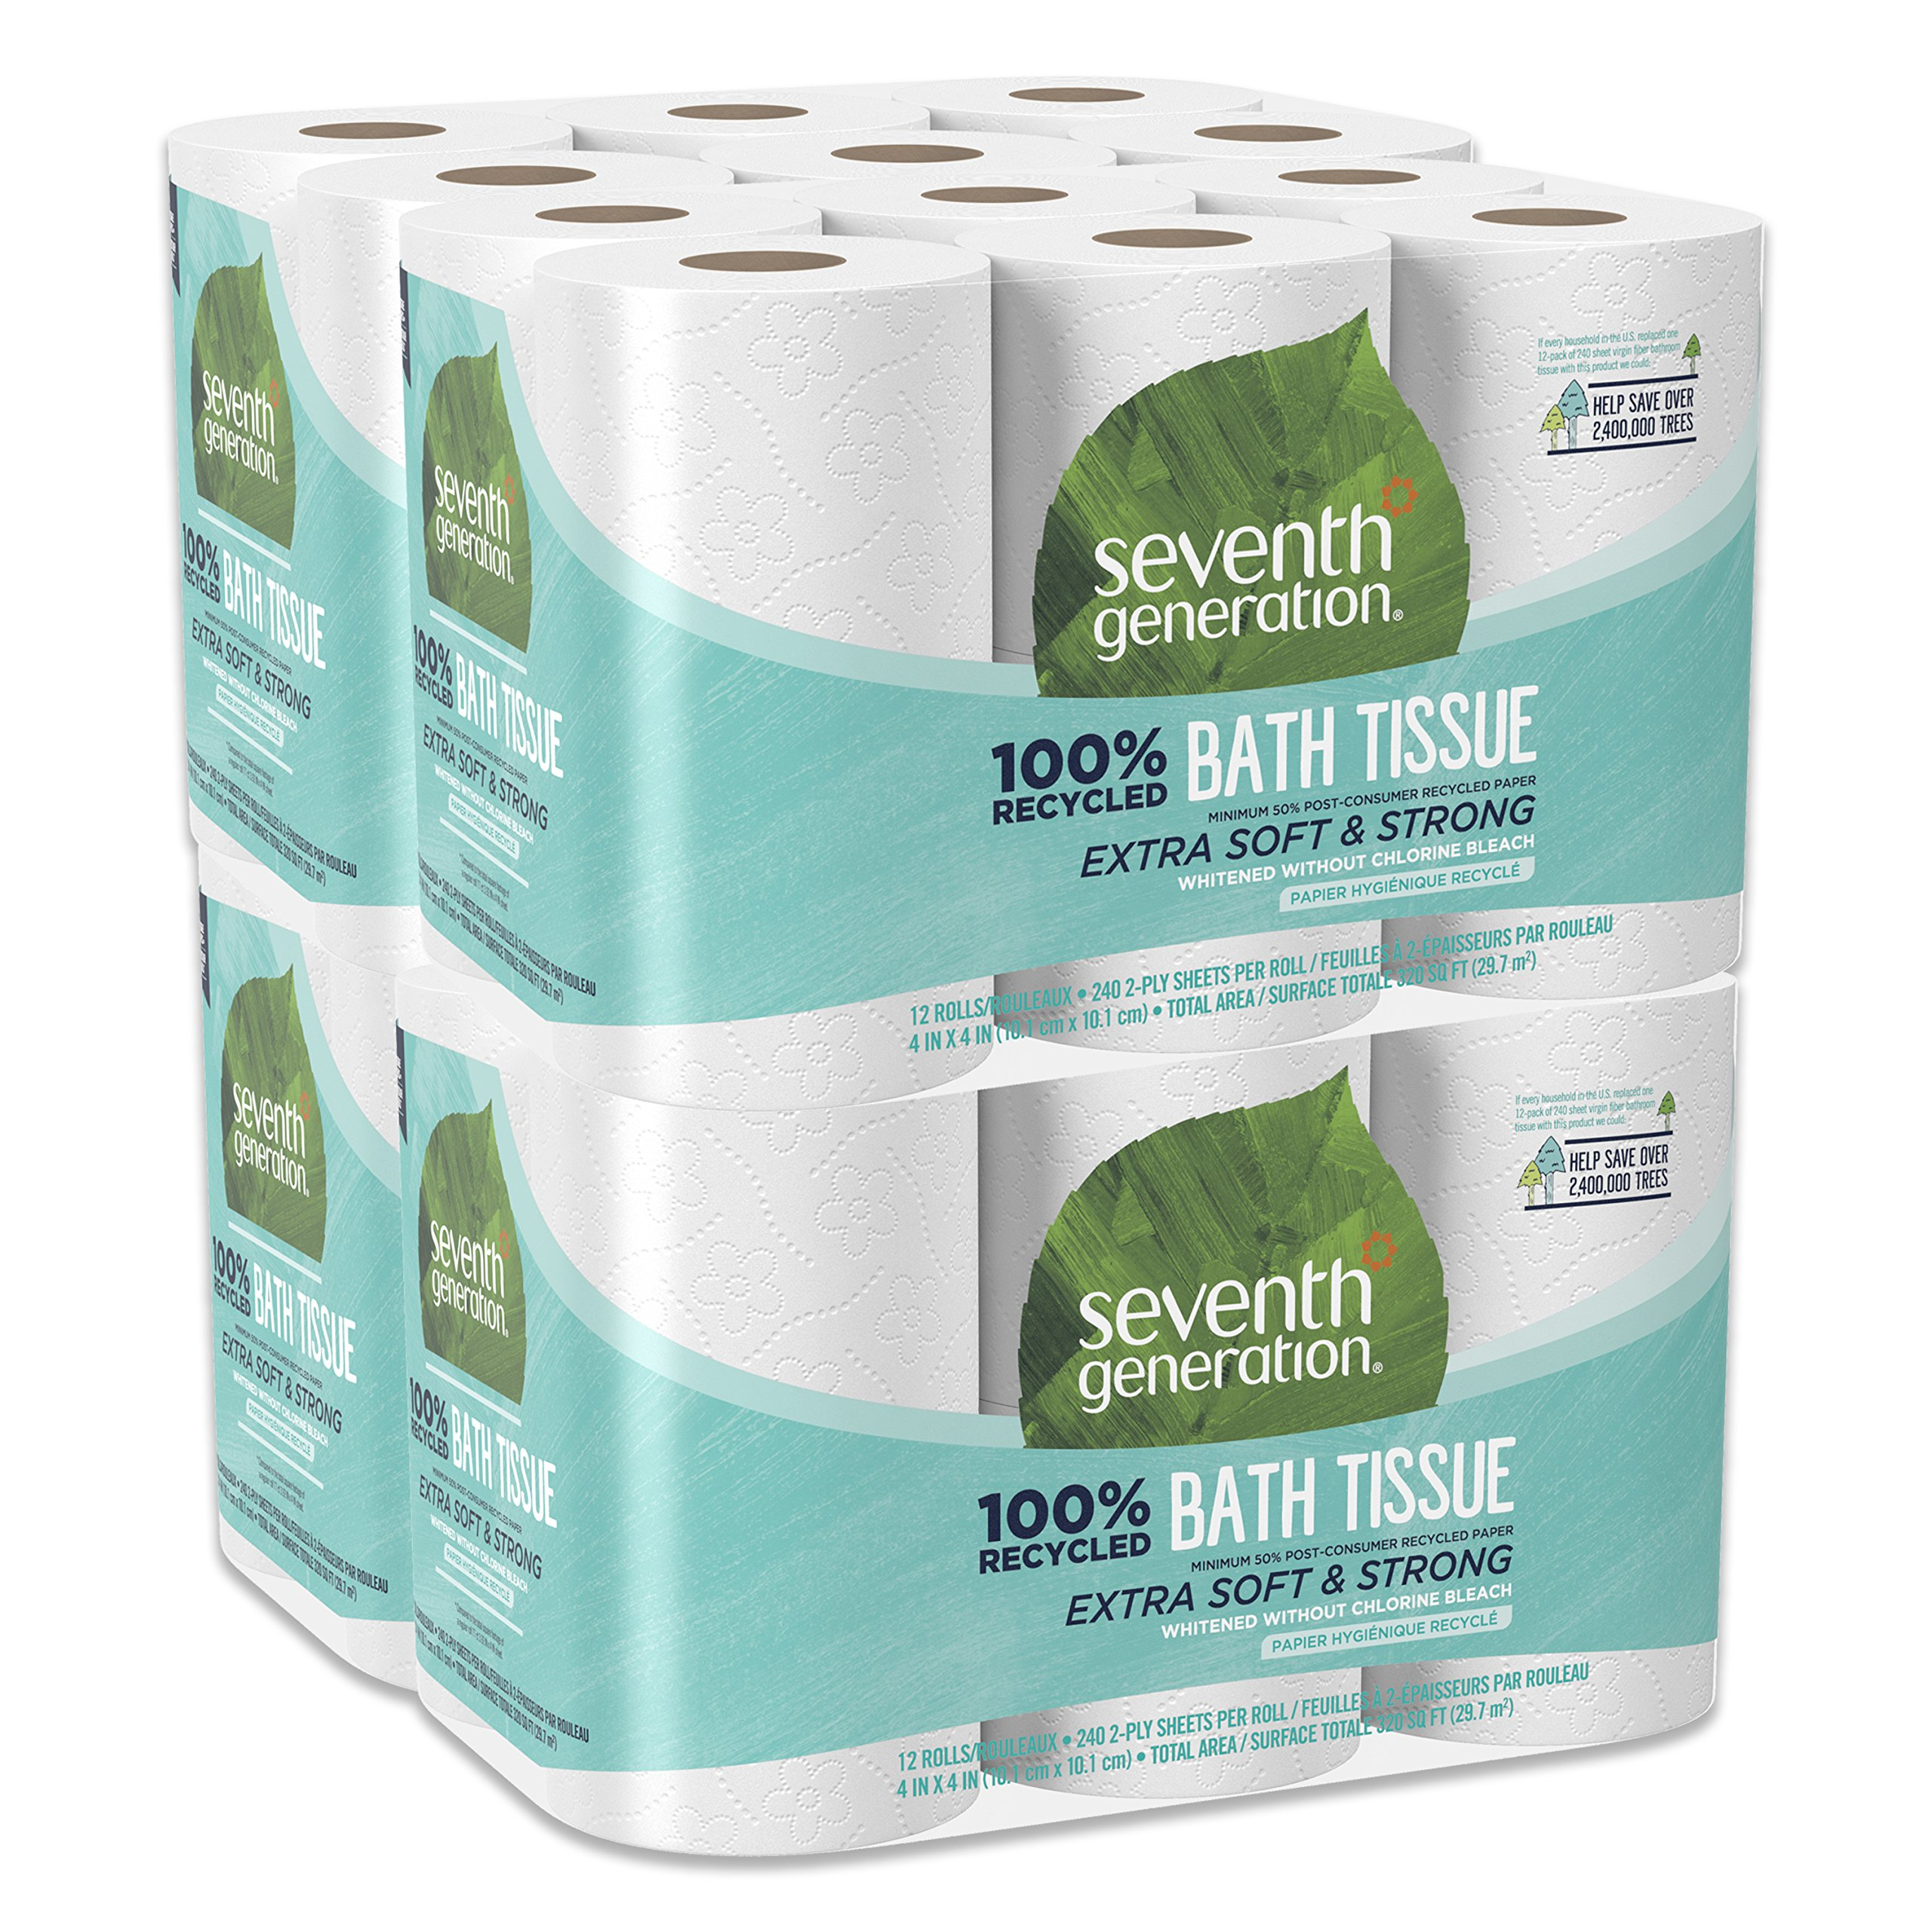 Ecoleaf recycled paper toilet rolls 9 pack household & bodycare.